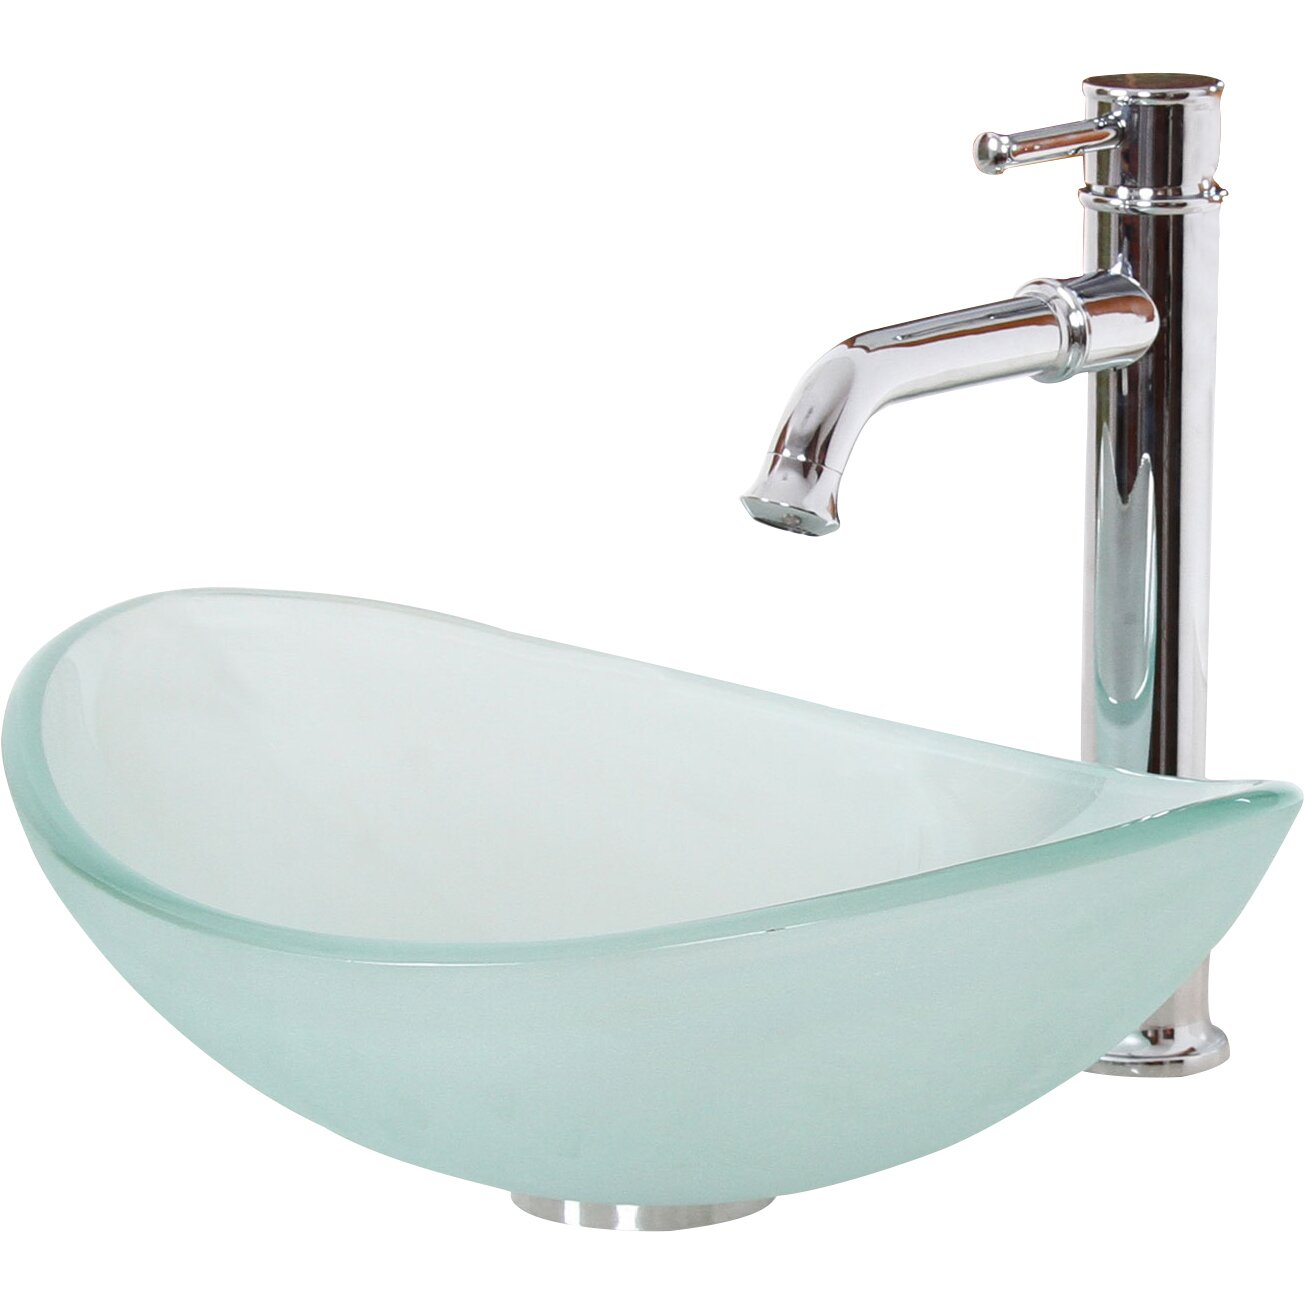 ... Mini Tempered Glass Boat Shaped Oval Bowl Bottom Vessel Bathroom Sink